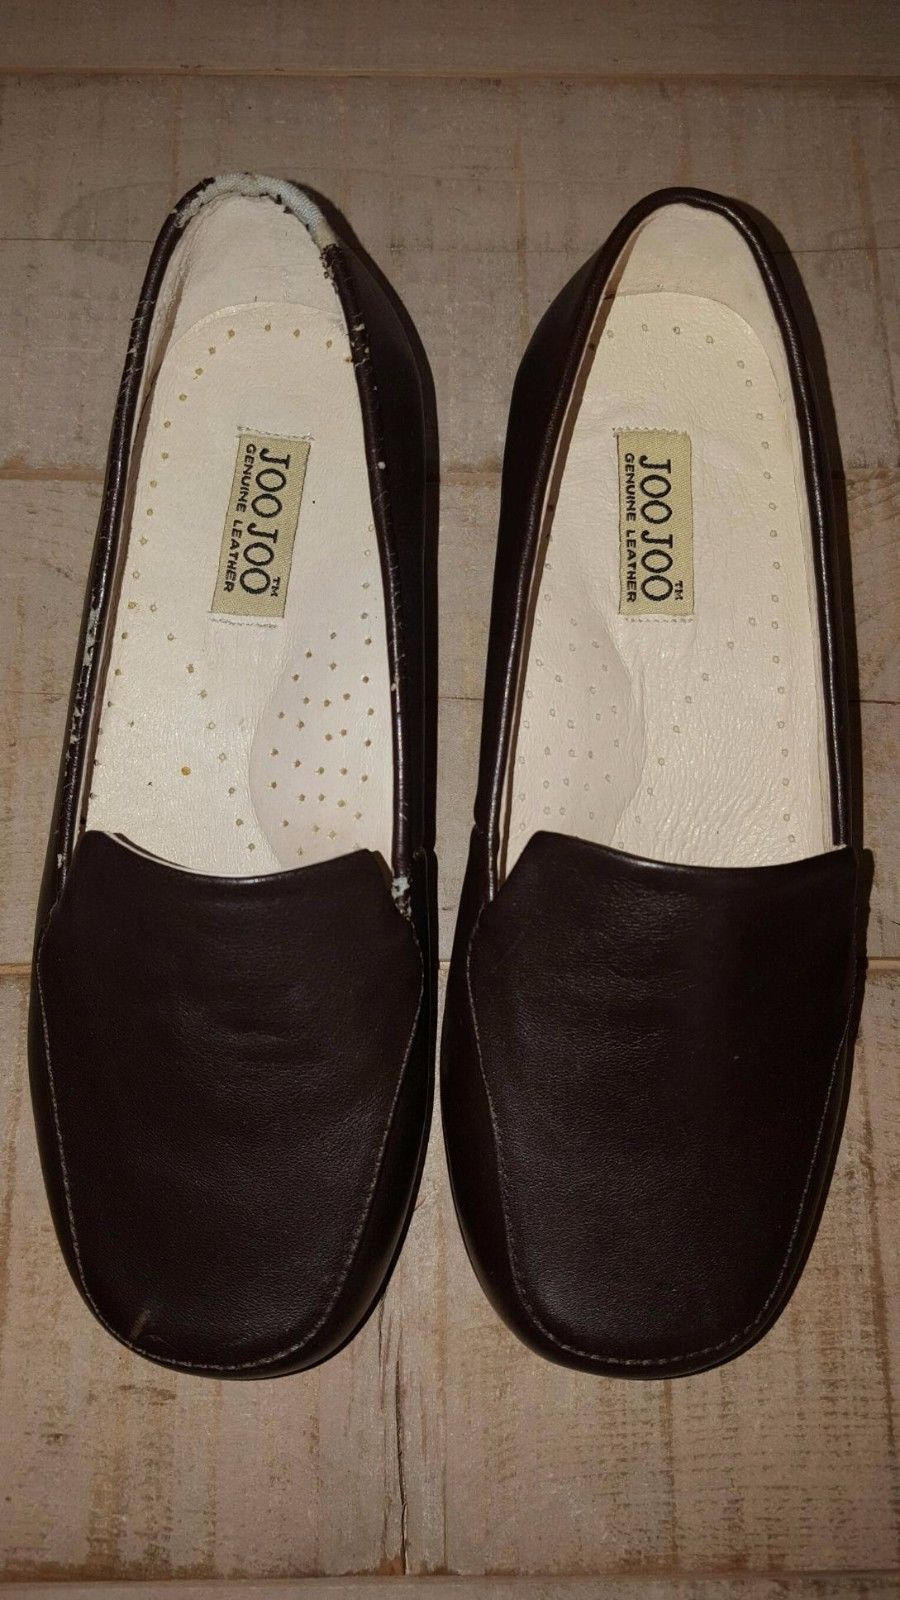 JOOJOO INTERNATIONAL TRIPLE M PLUS ESTHER BROWN WIDE WOMEN'S COMFORT SHOES